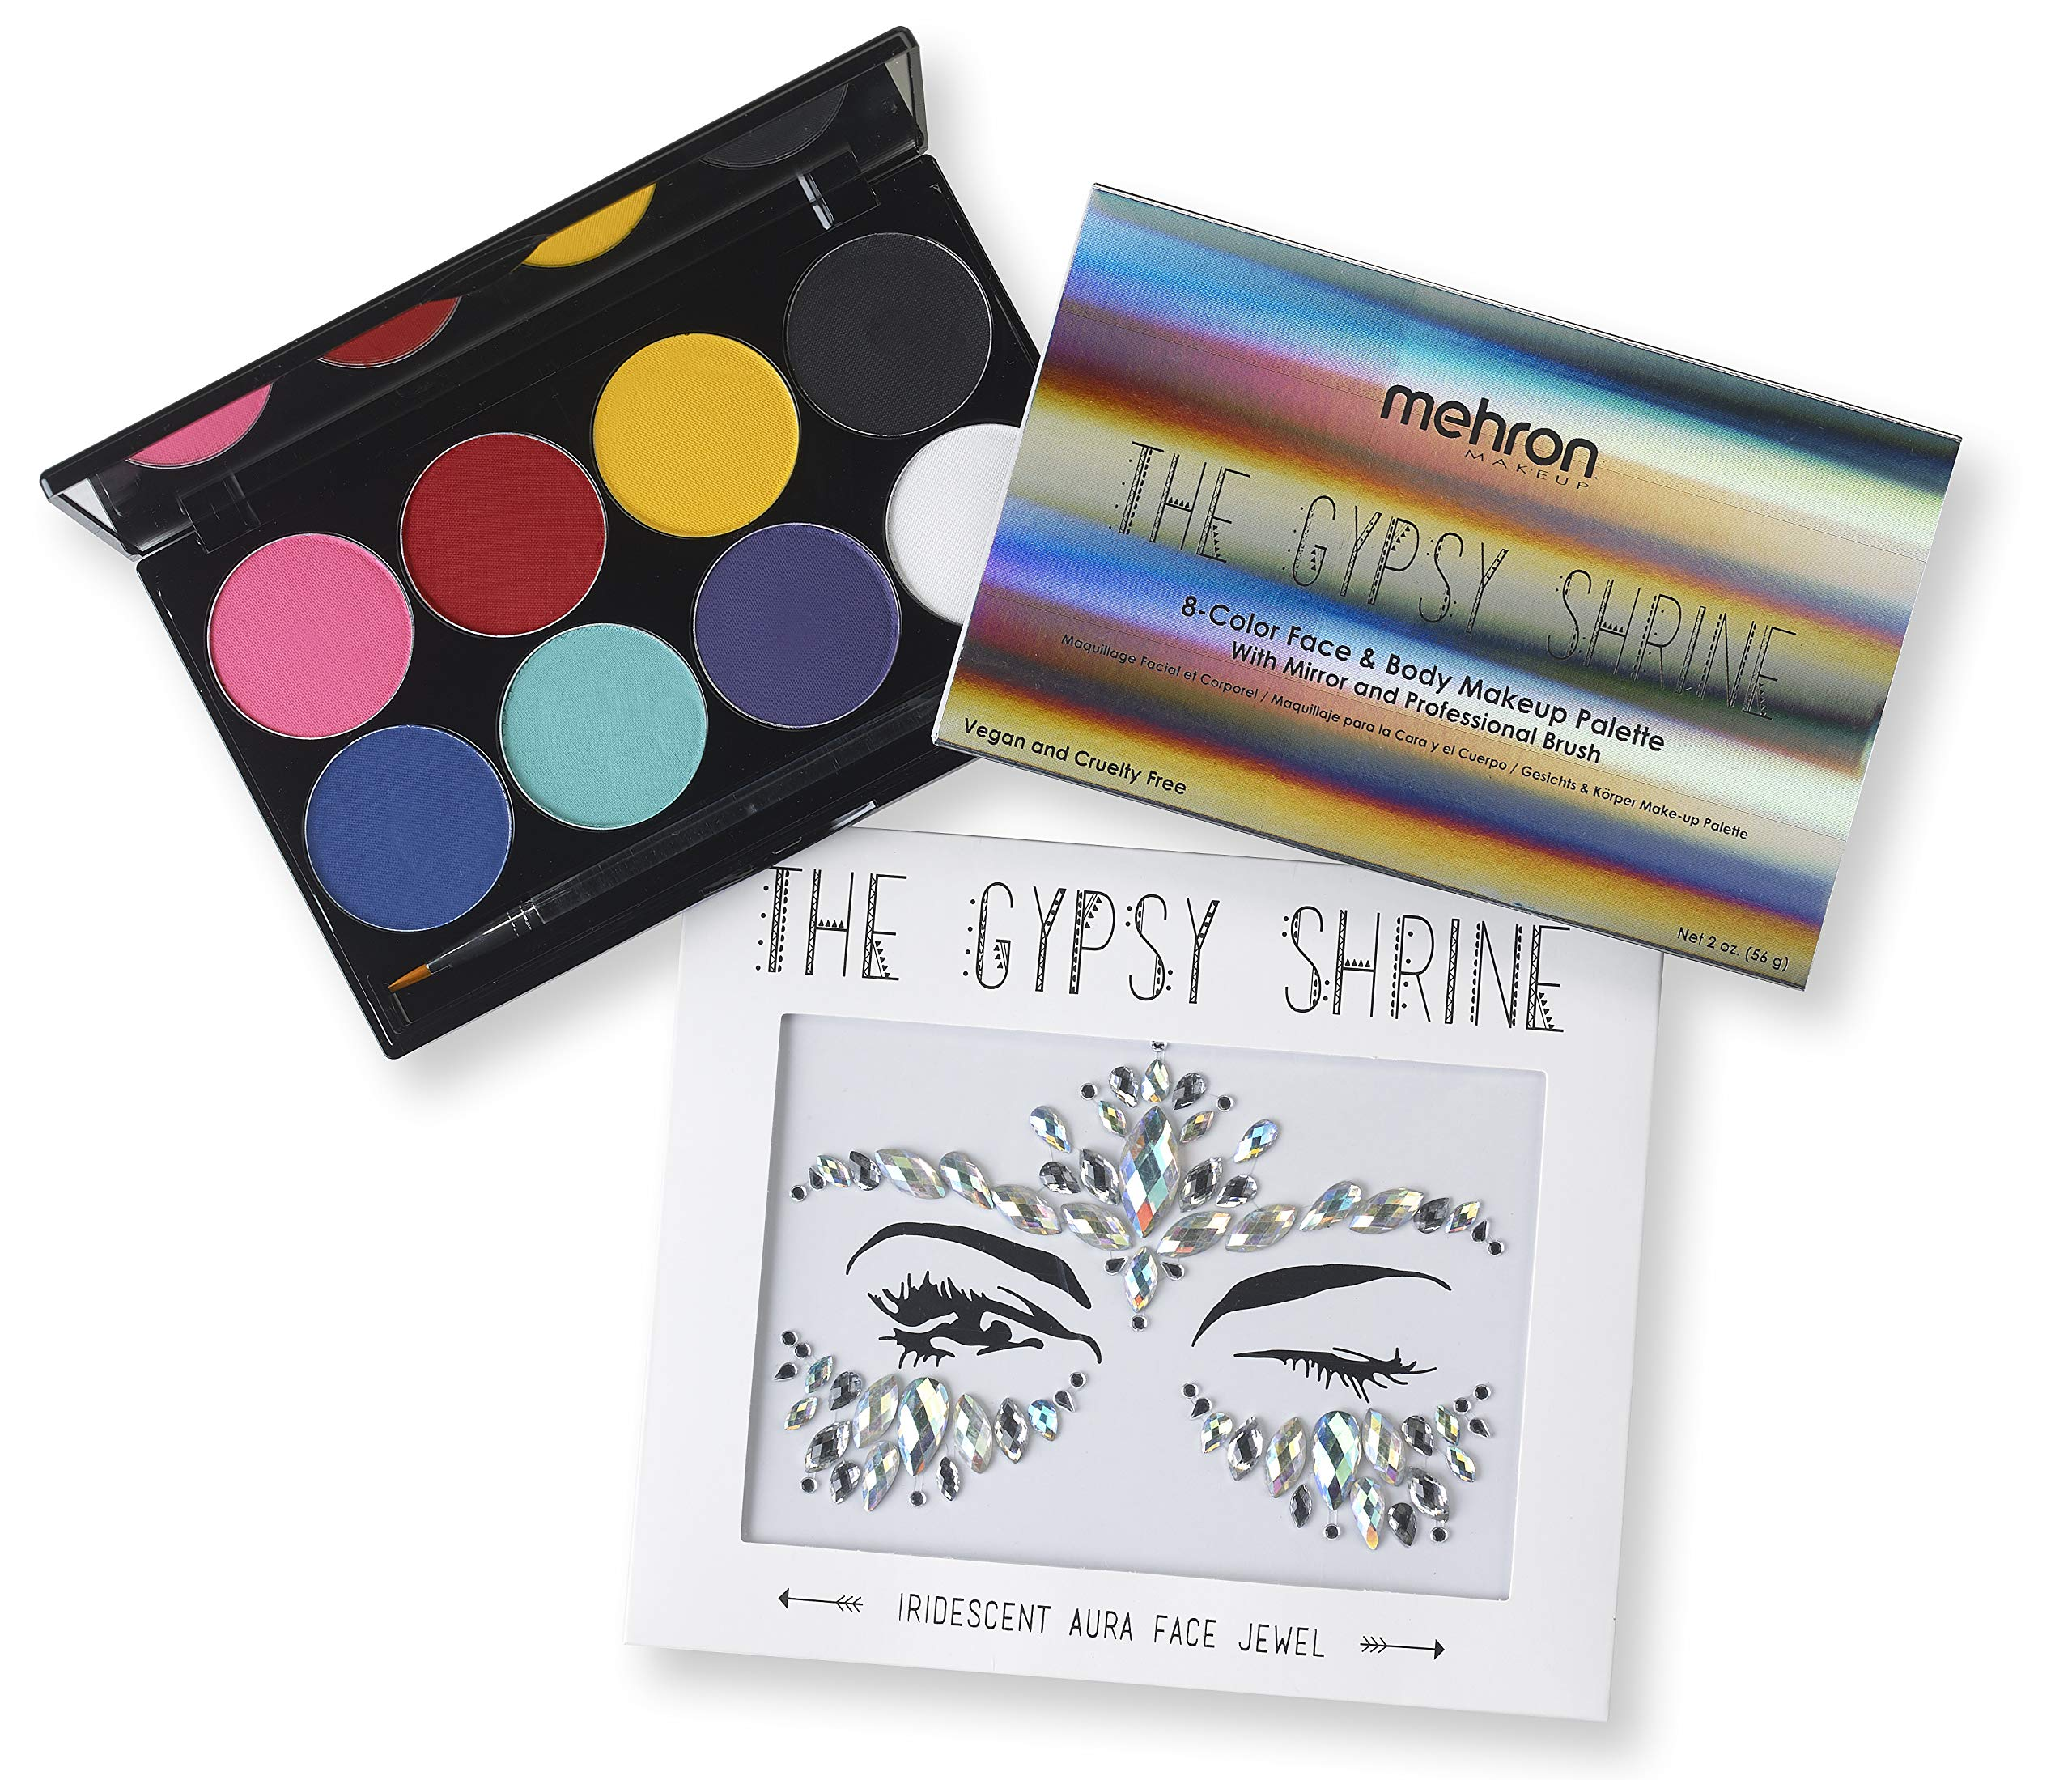 Mehron Makeup Face & Body Makeup Palette with The Gypsy Shrine Jewel Collection (Iridescent Aura)